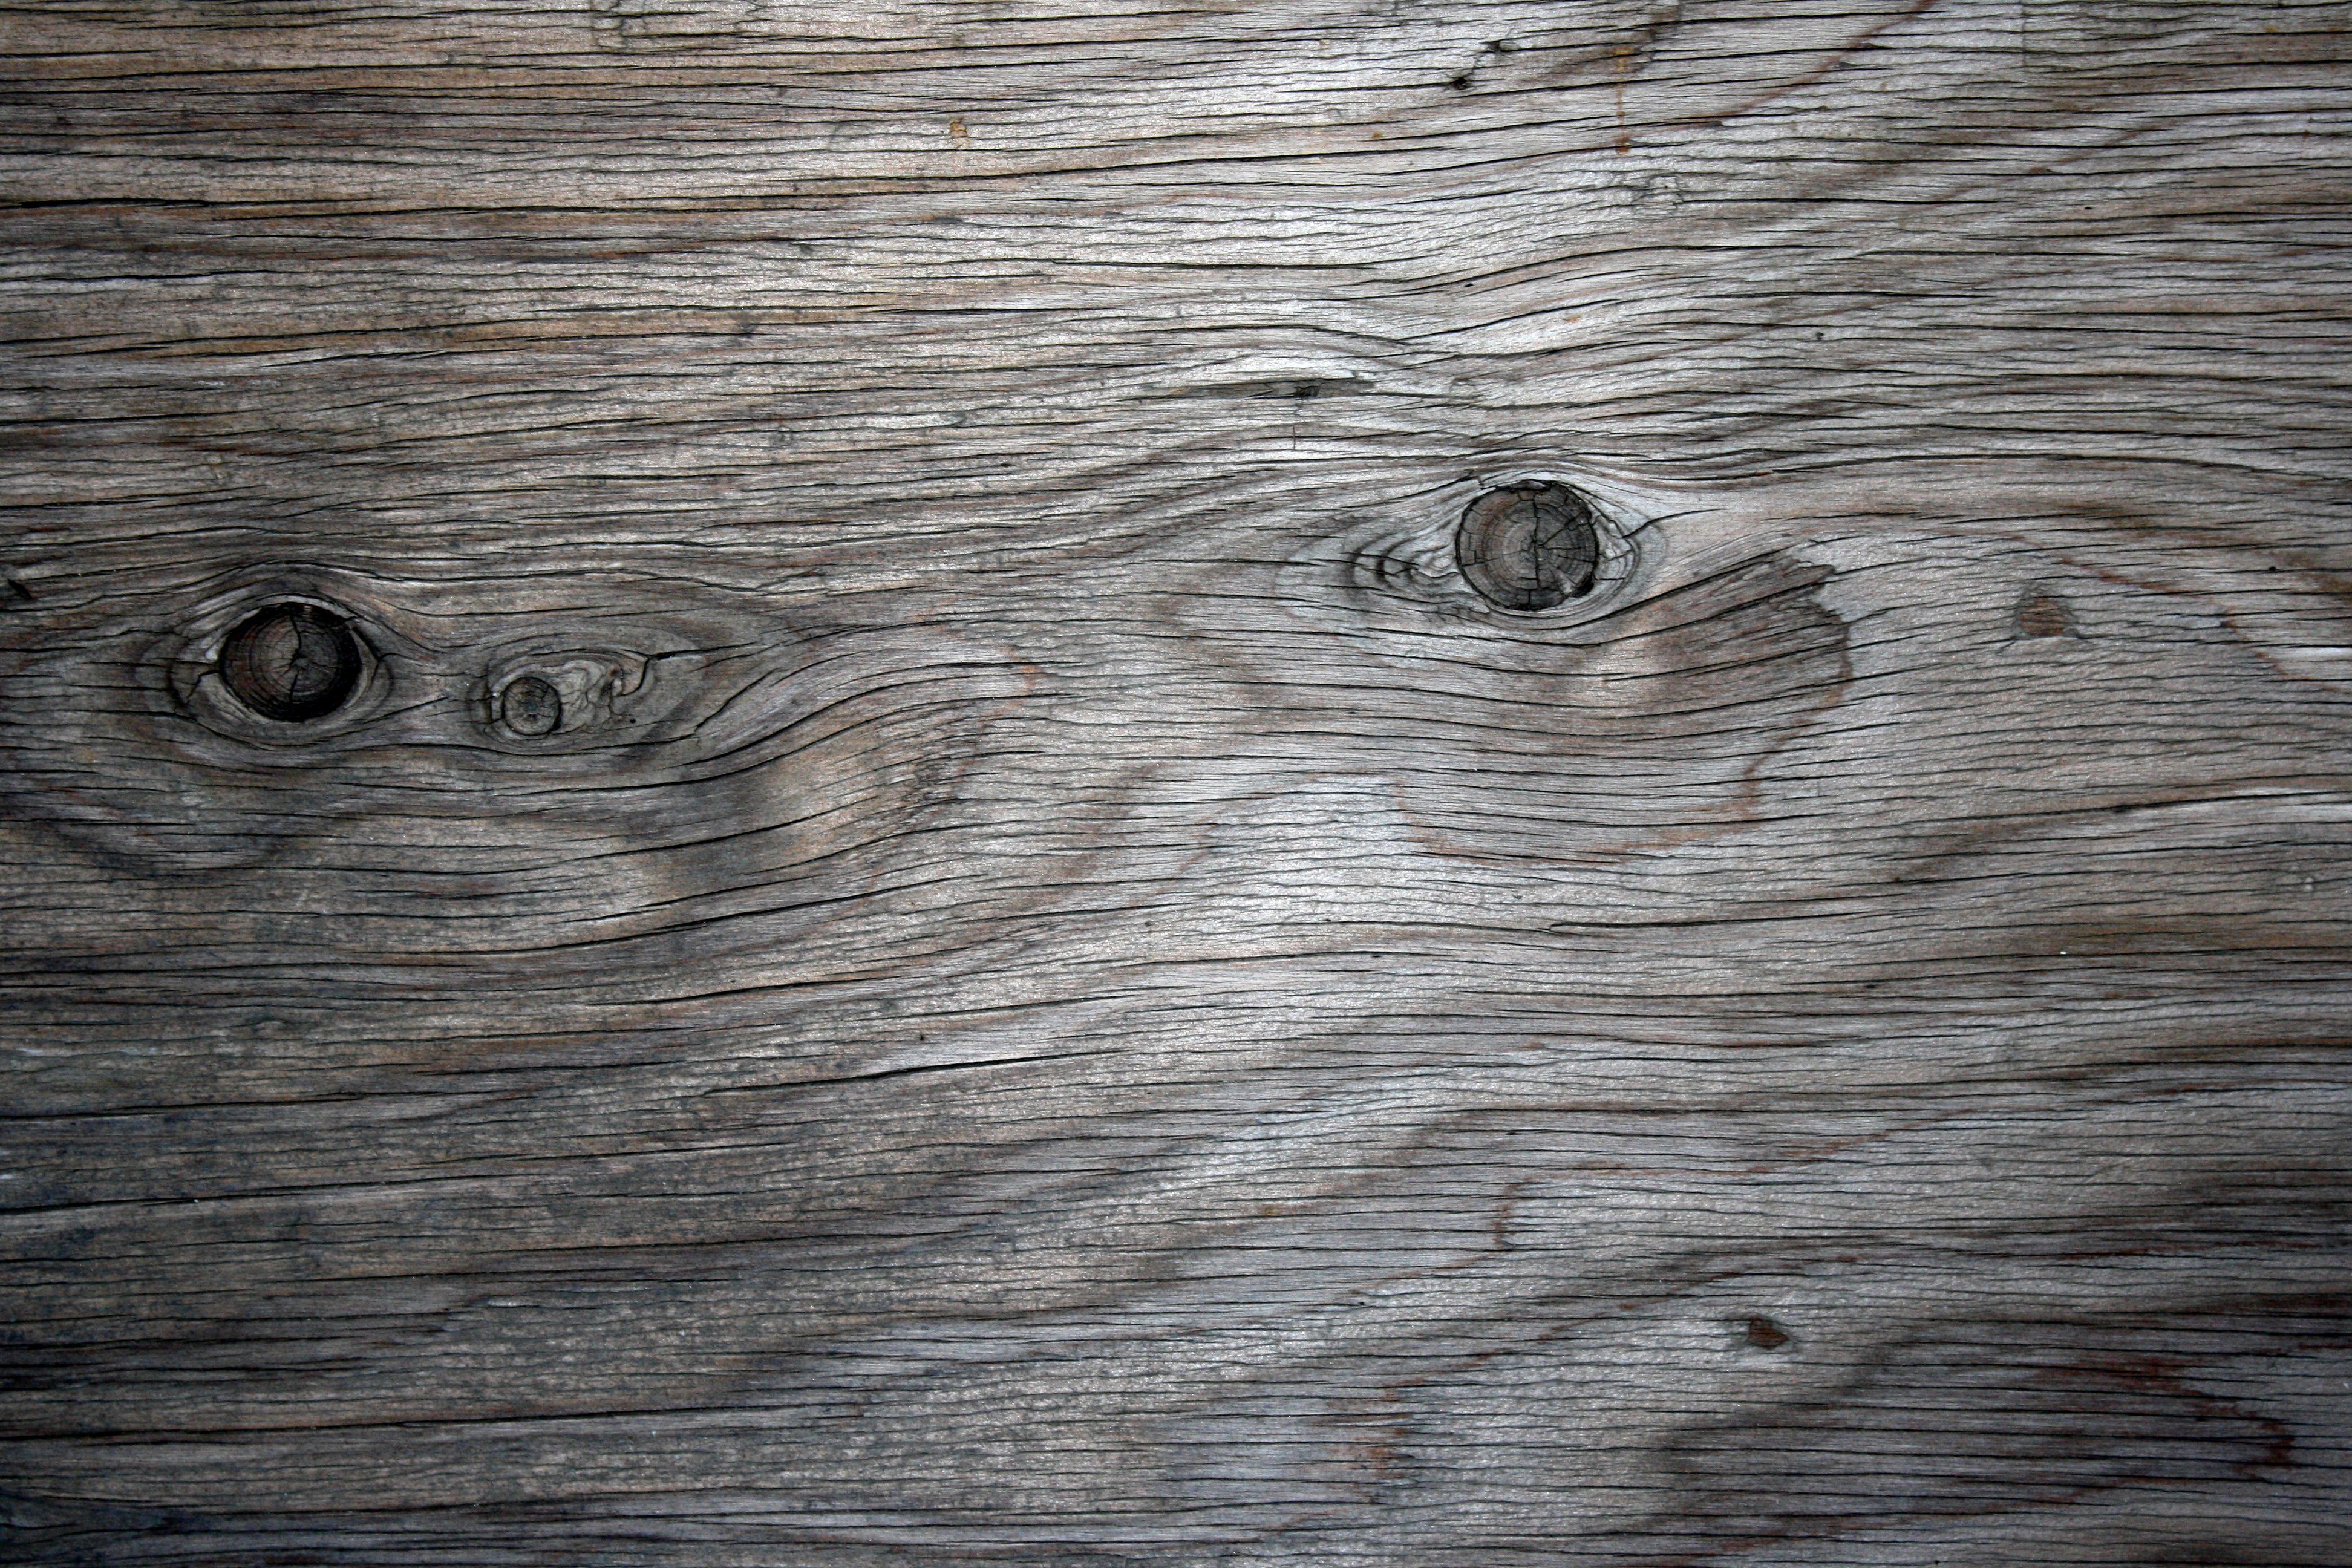 Weathered Wood Grain Texture Picture | Free Photograph | Photos ...